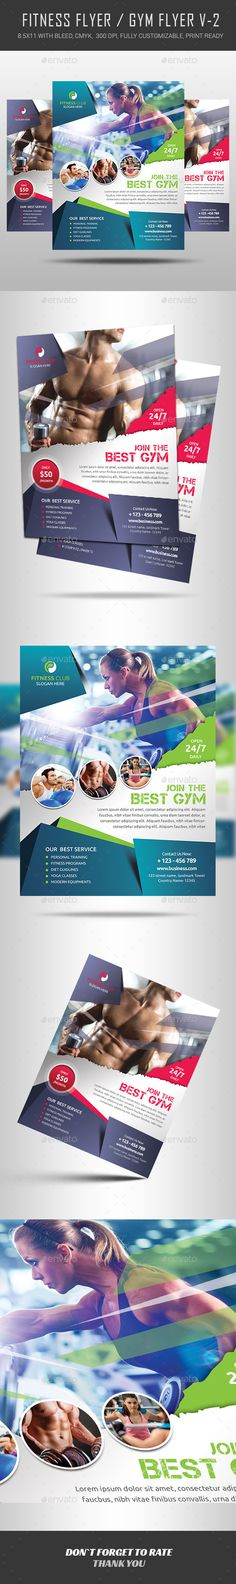 Fitness Roll-up Template, Banners and Signage - Gym Brochure Templates